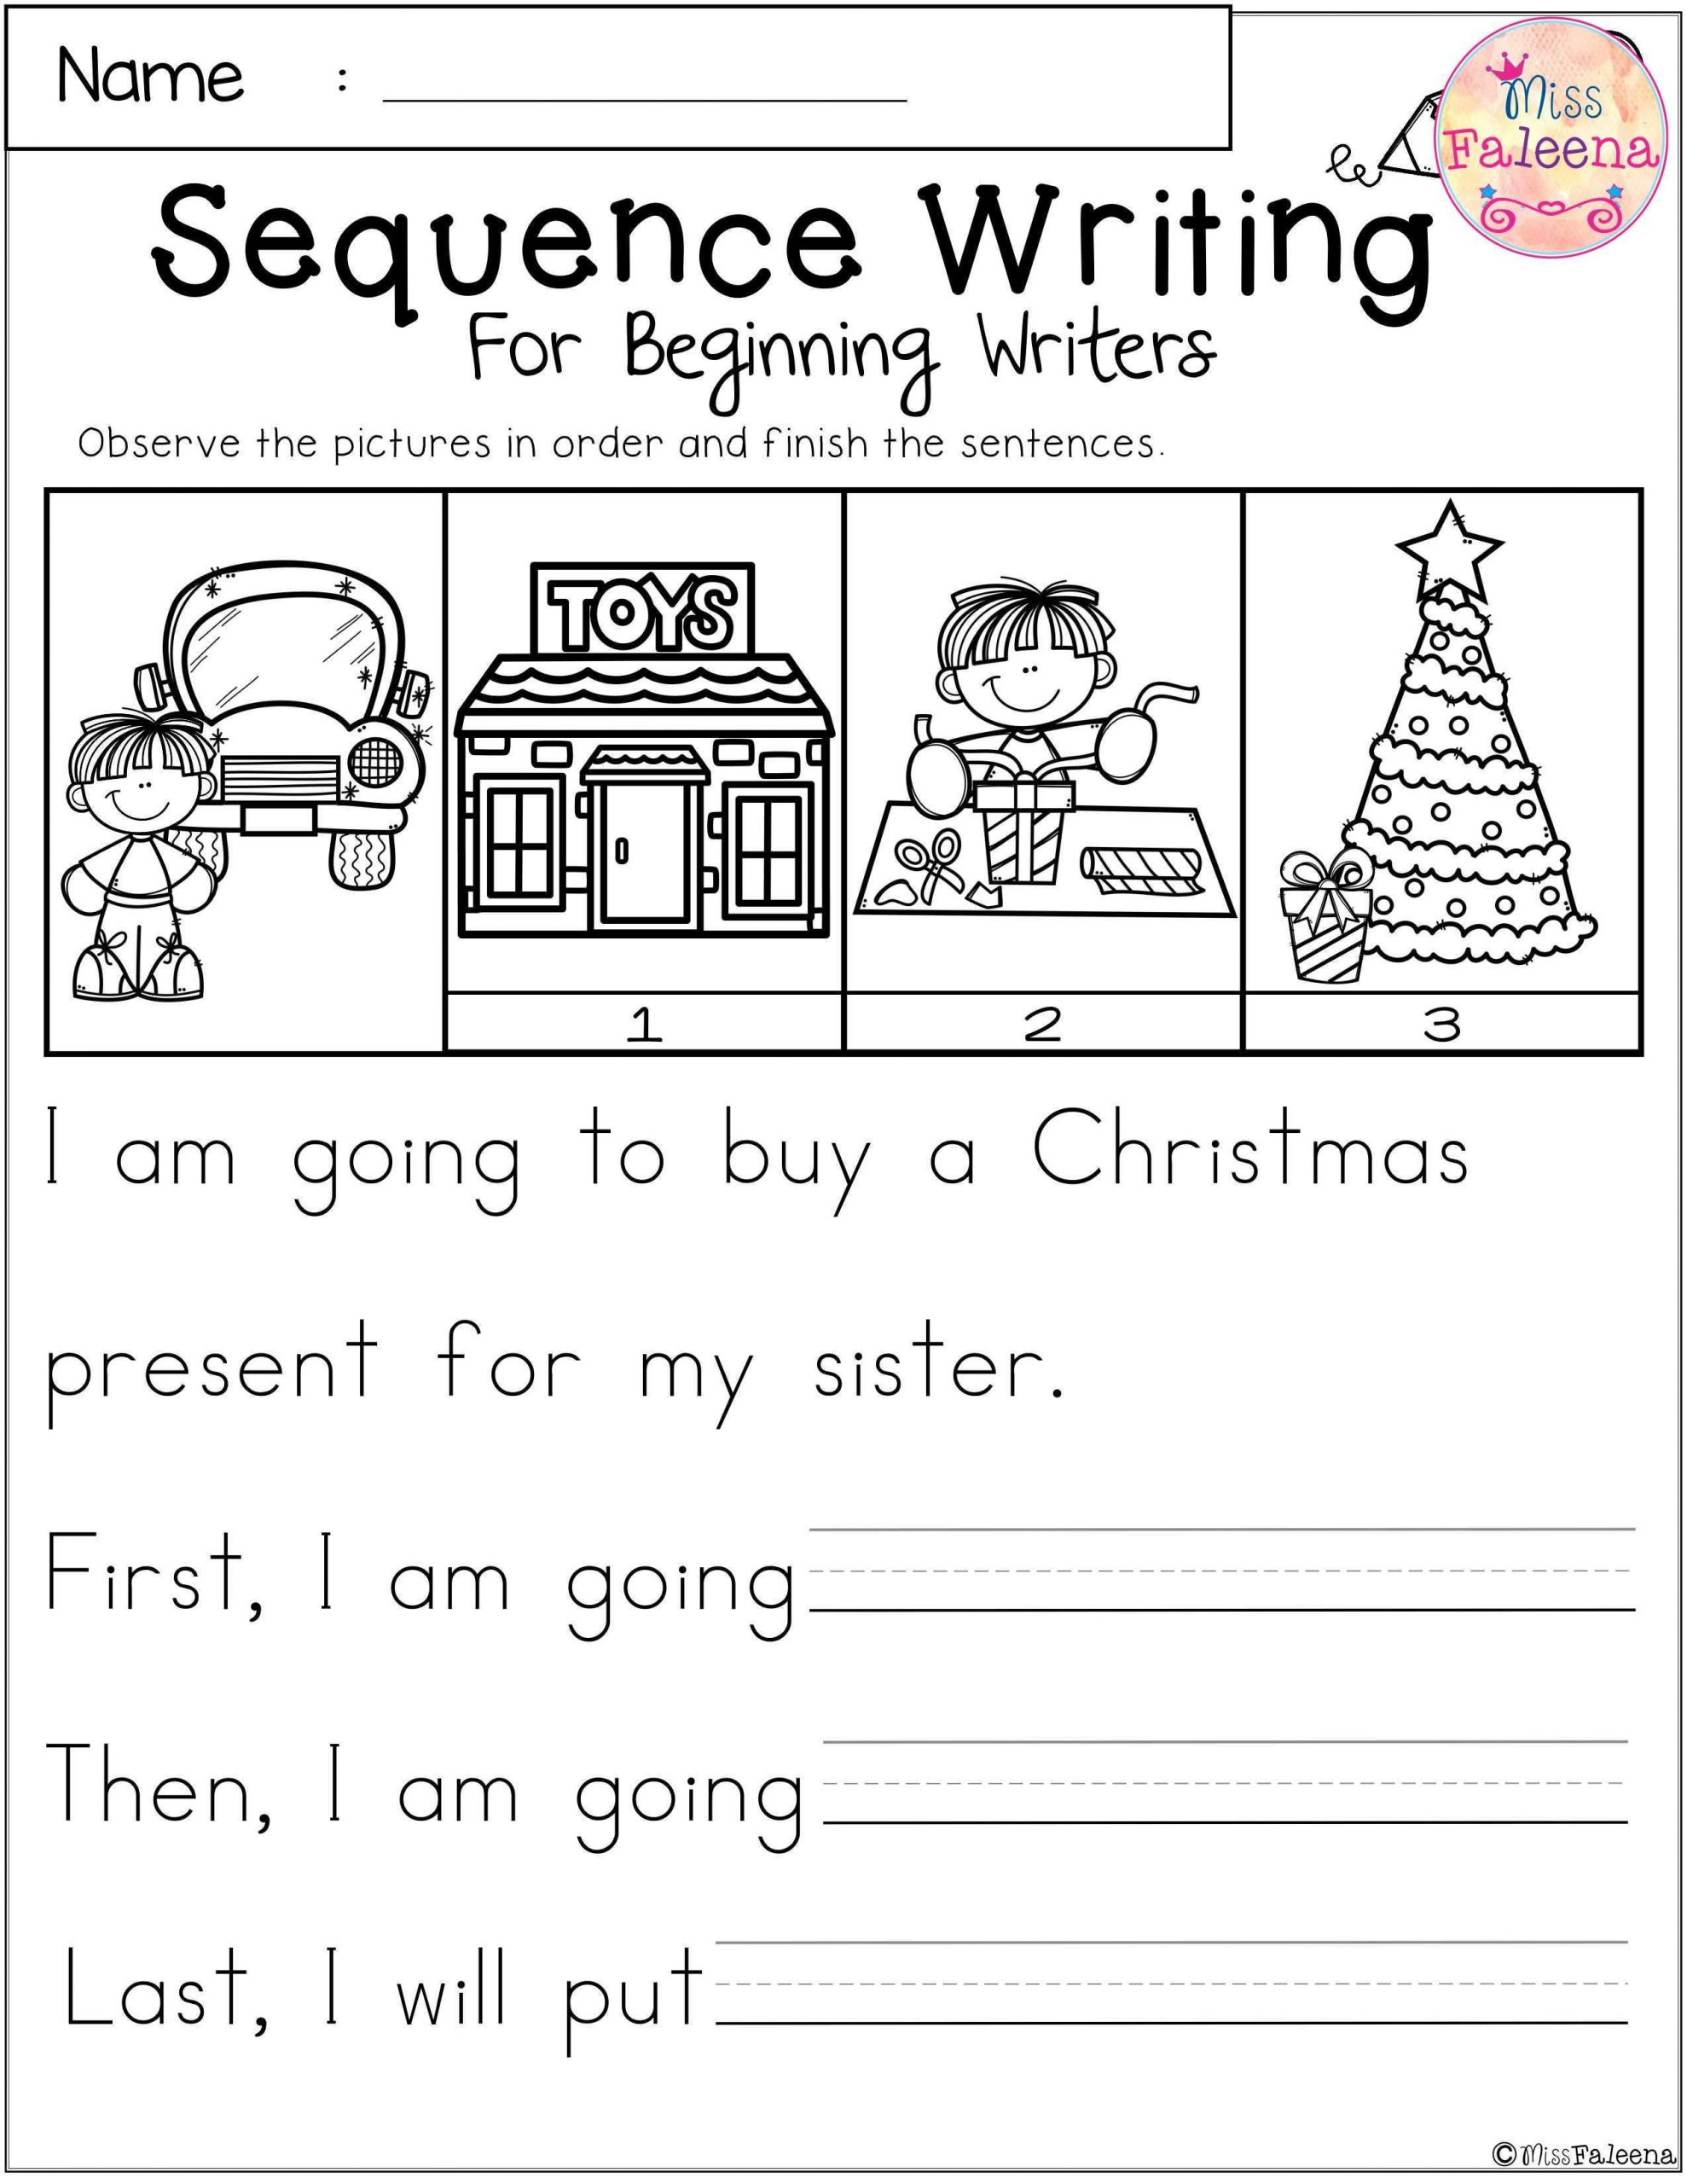 Sequence Worksheets 3rd Grade December Sequence Writing for Beginning Writers